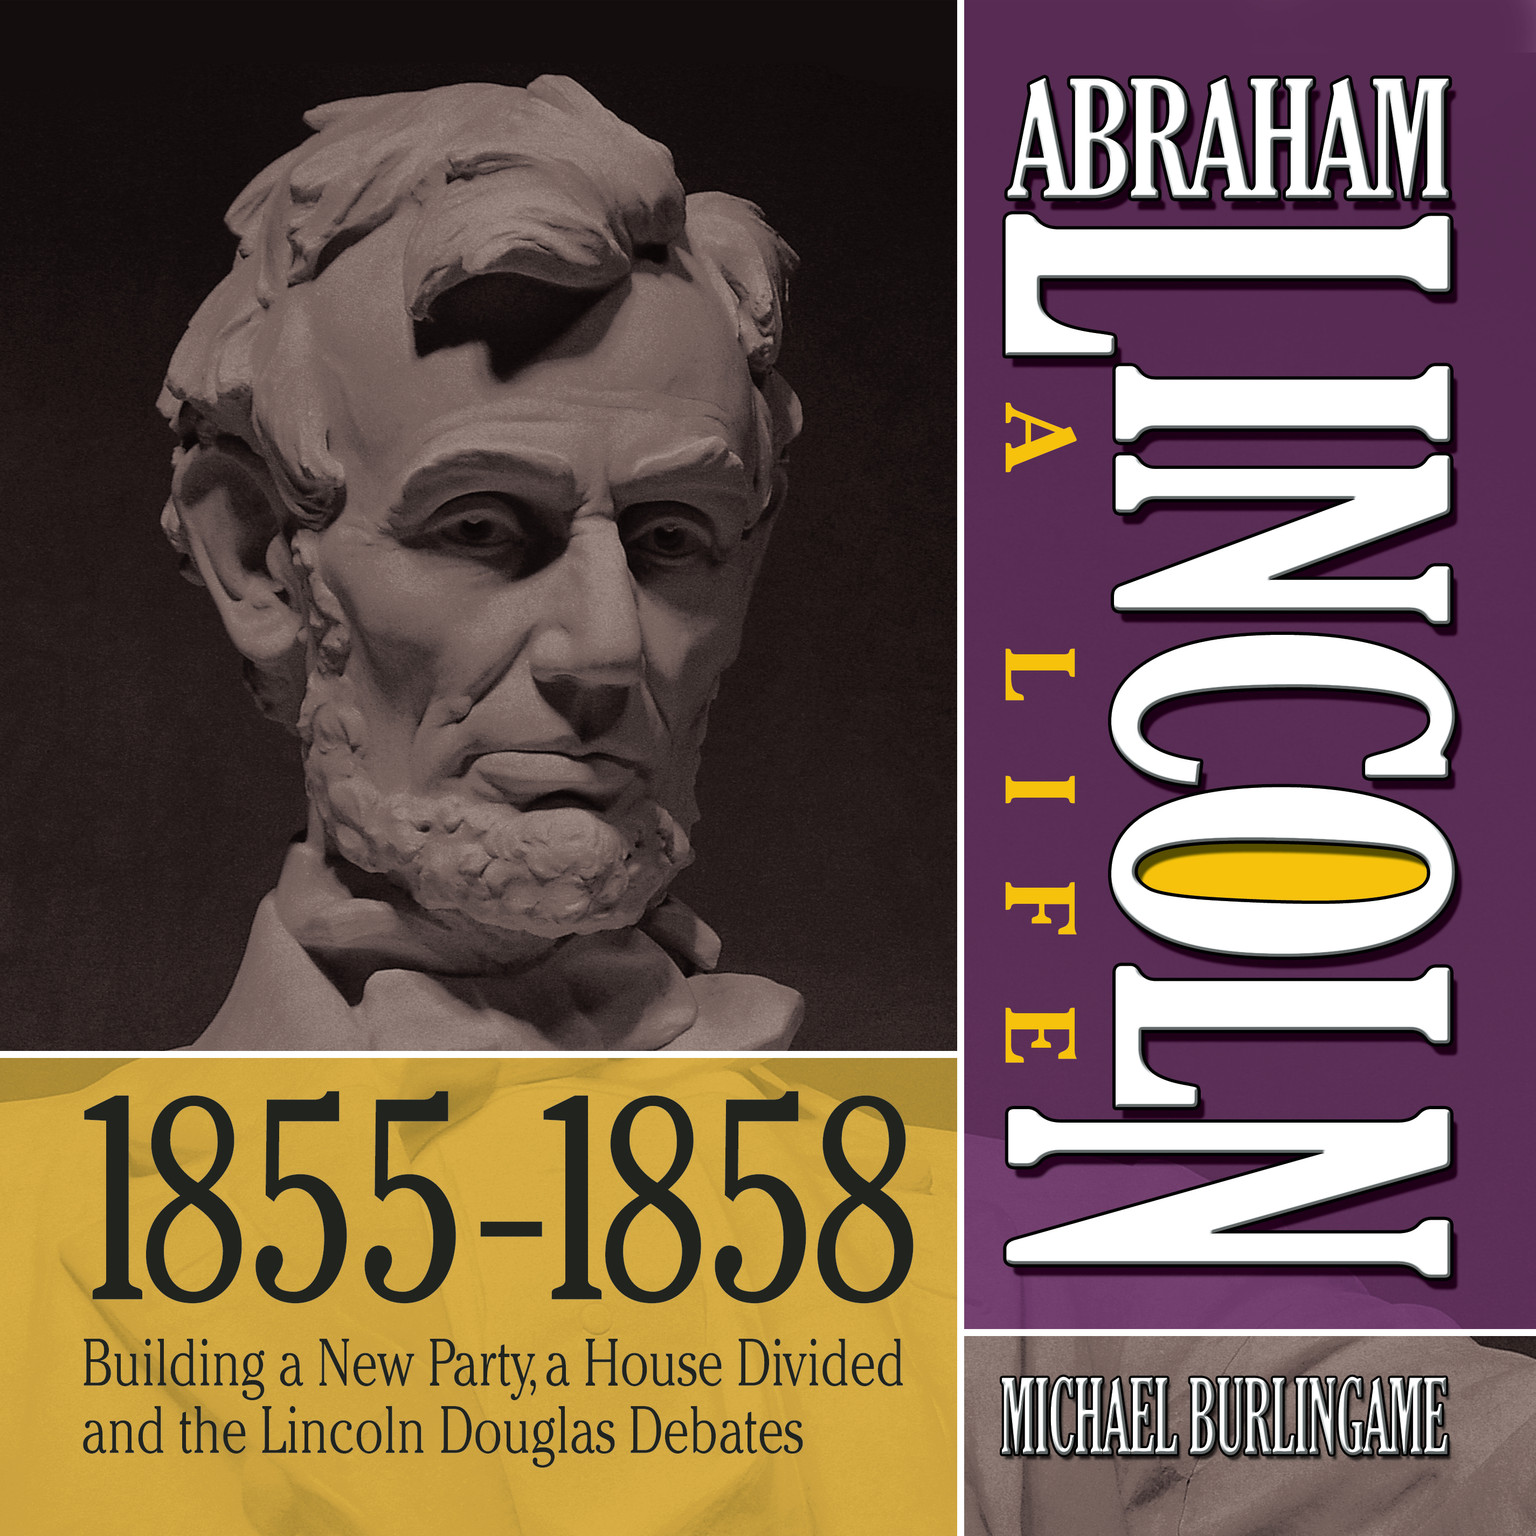 Printable Abraham Lincoln: A Life  1855-1858: Building a New Party, a House Divided and the Lincoln Douglas Debates Audiobook Cover Art